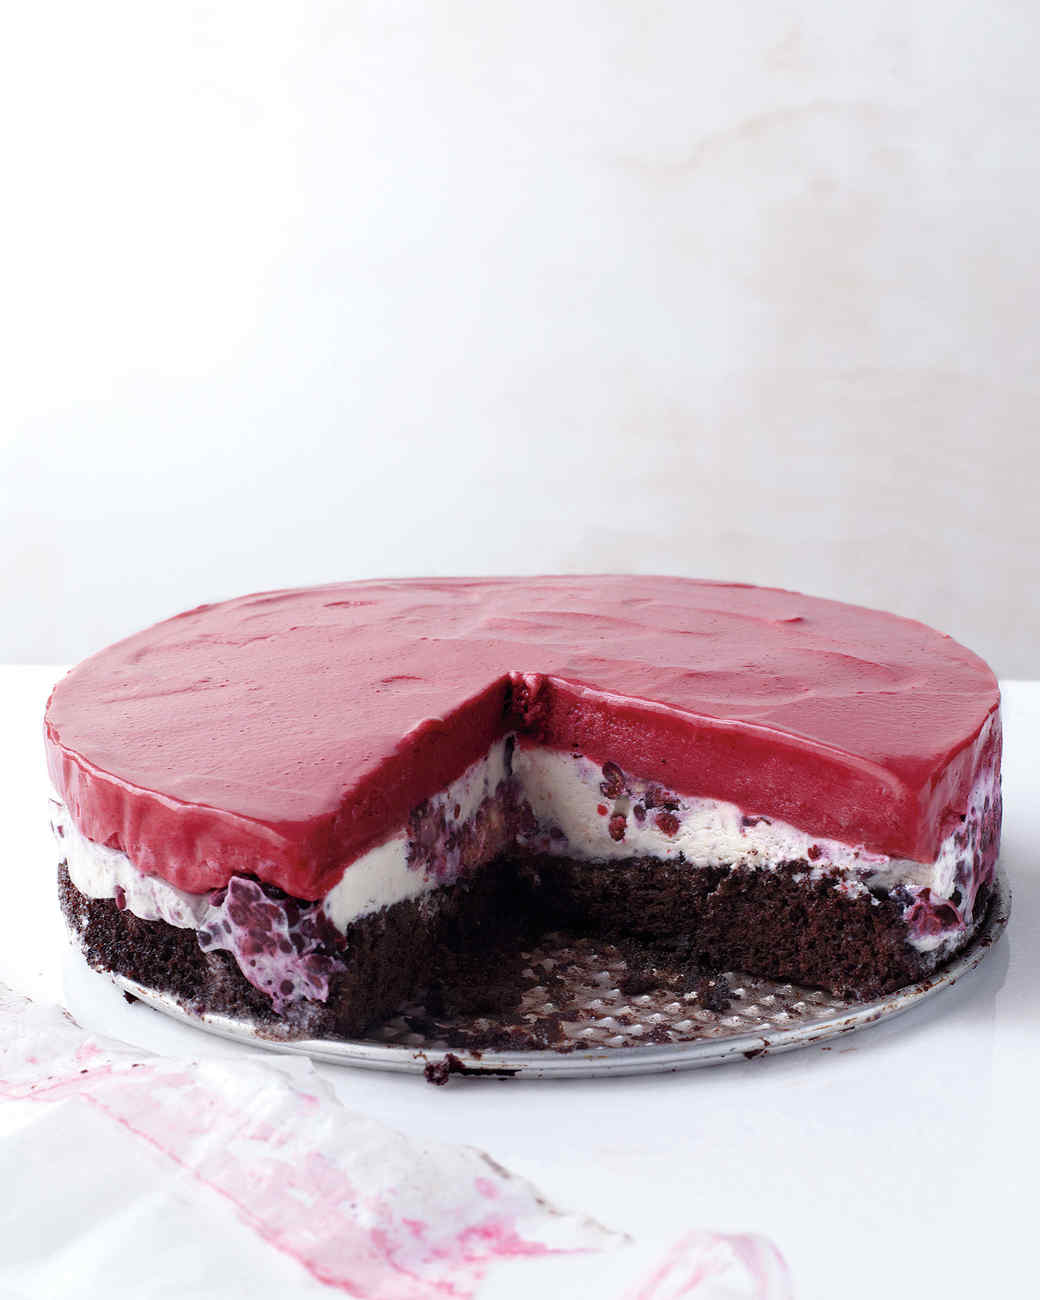 Berry Ice Cream Cake Recipe Chocolate-berry Ice Cream Cake